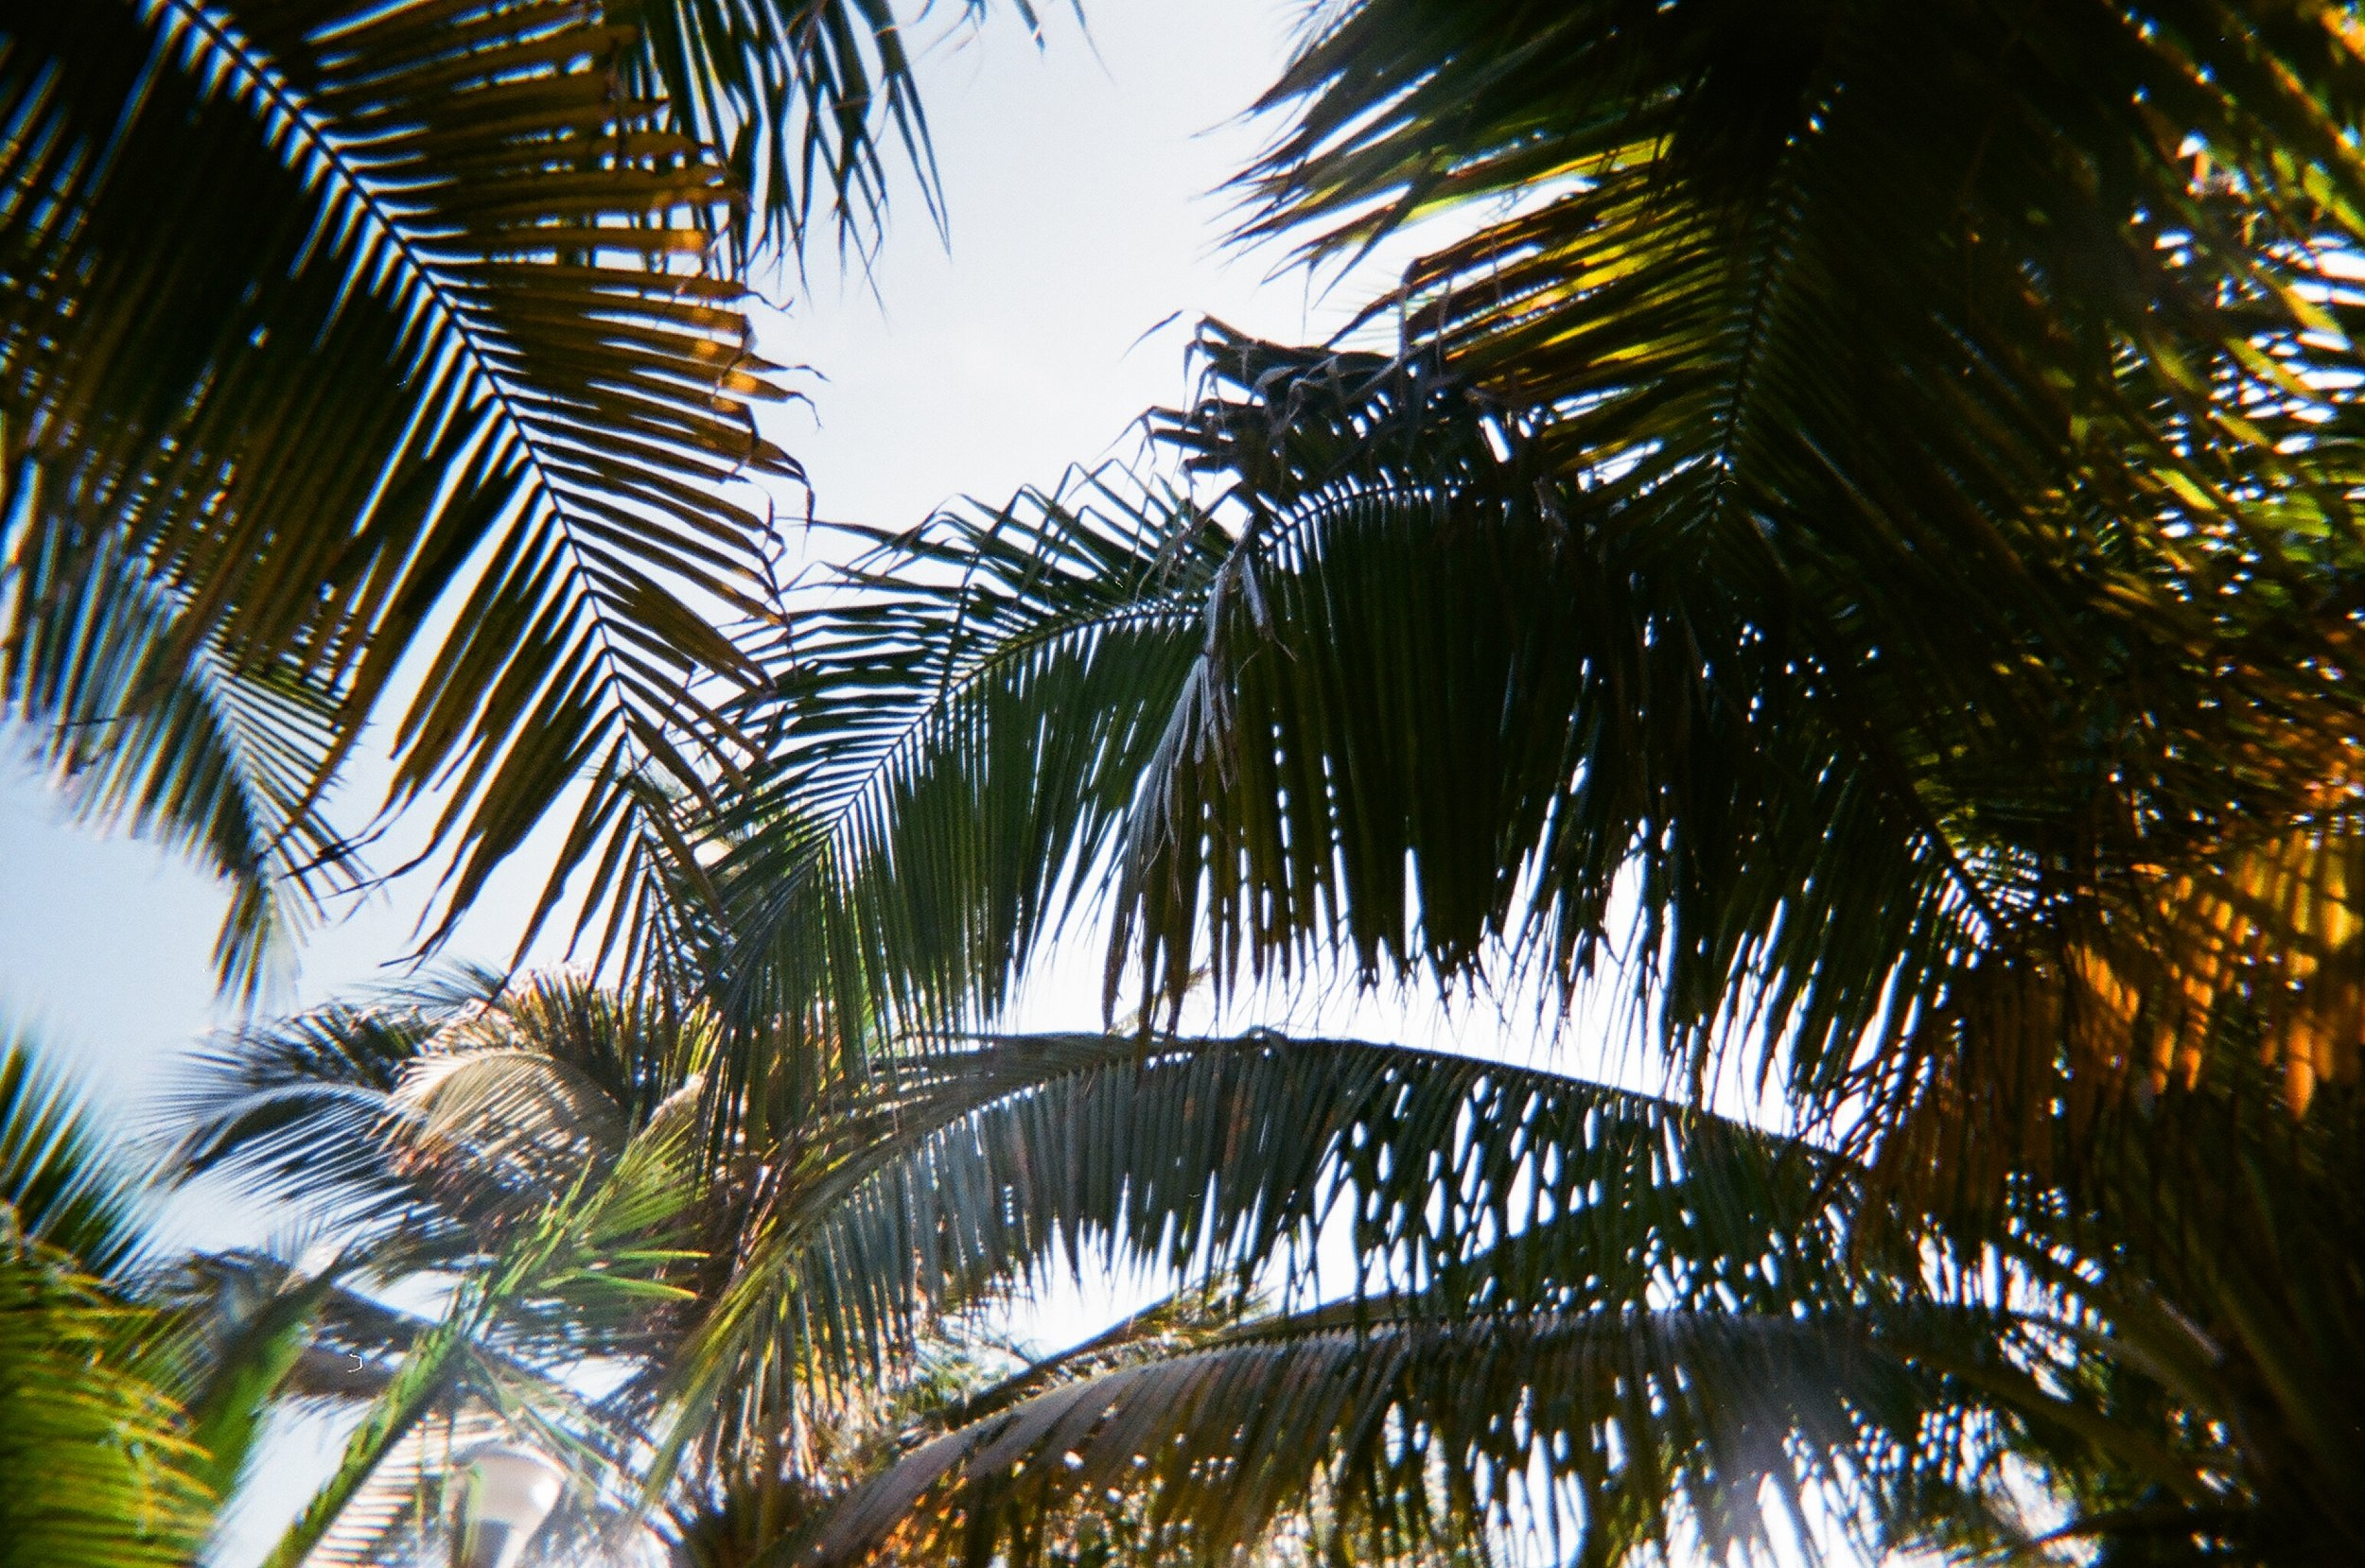 looking up through the palm tress on the beach